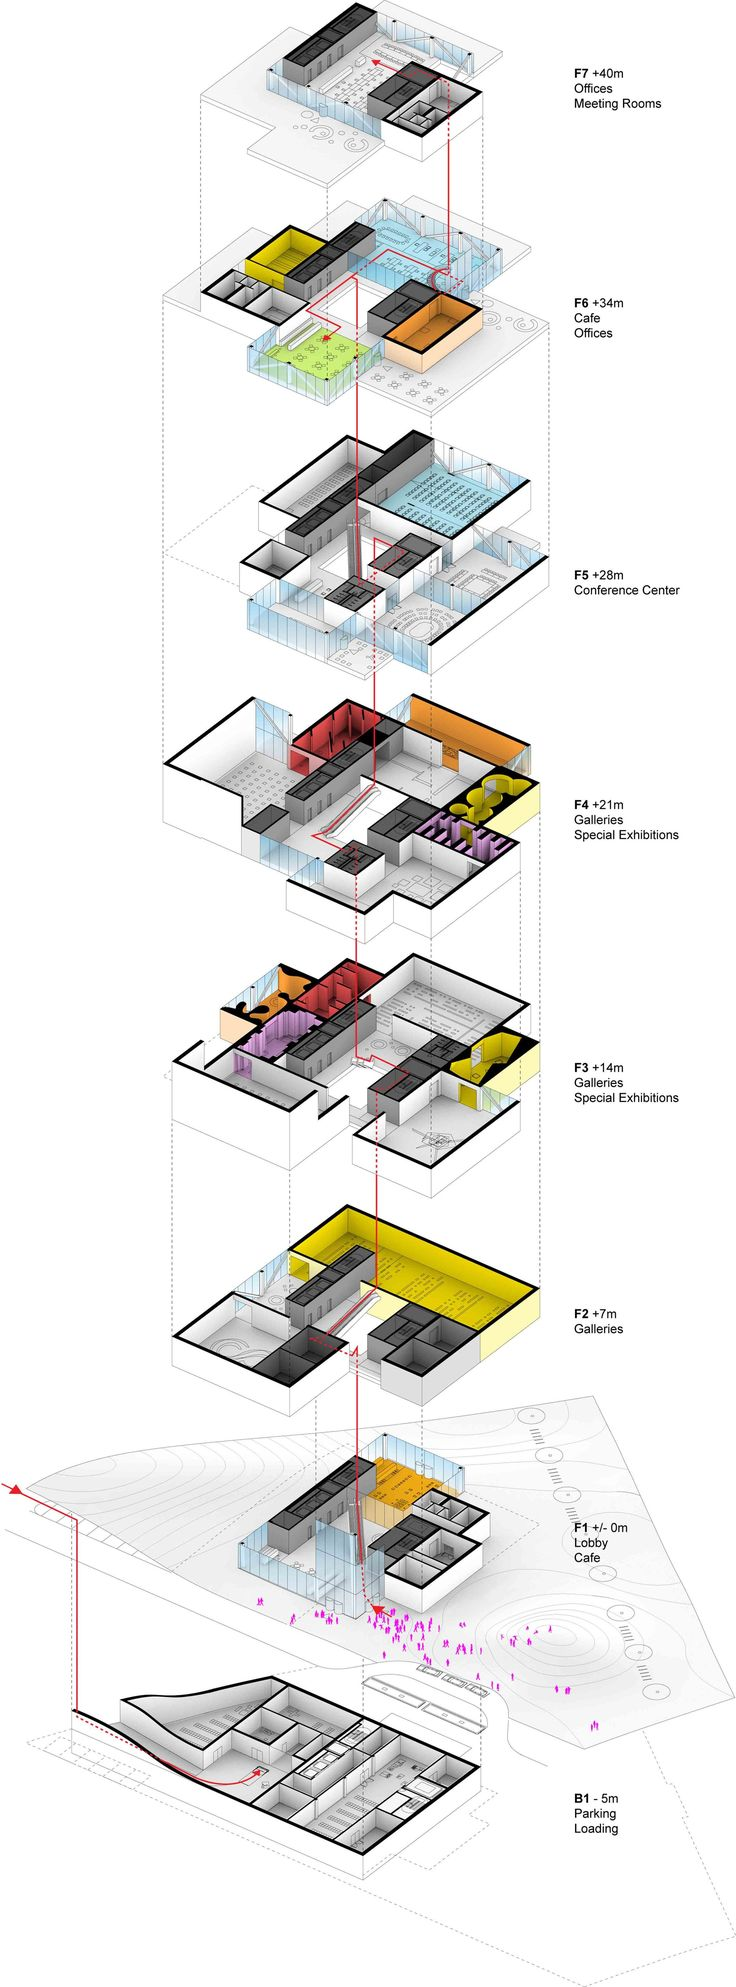 Image 2 of 5 from gallery of Haus der Zukunft Competition Entry / Project Architect Company. diagram 02